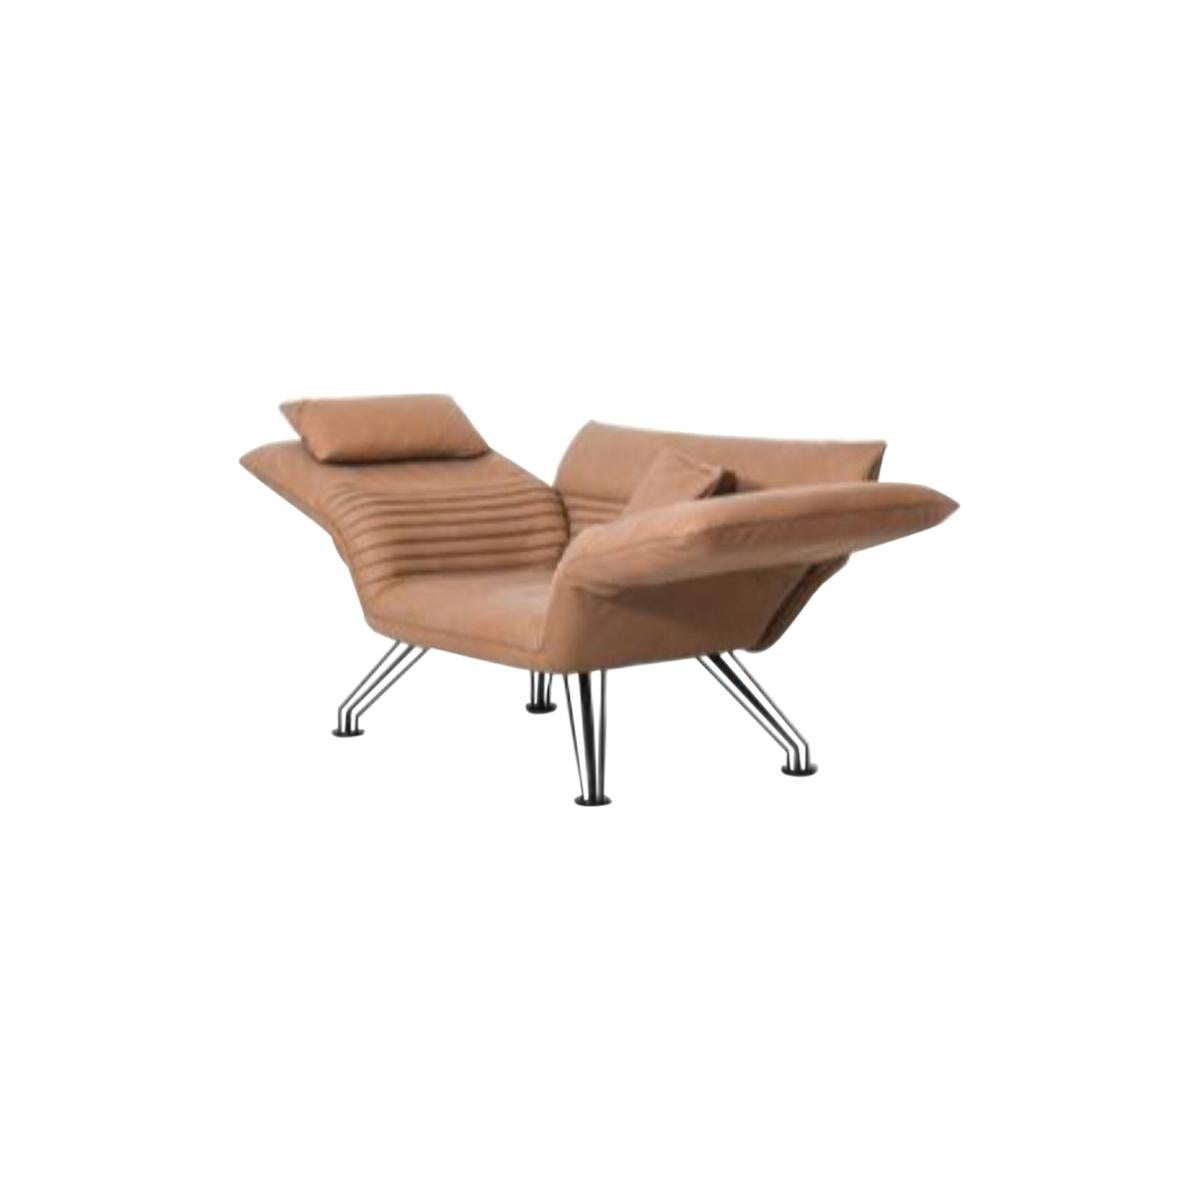 DS-142 Multifunctional Lounge Chair by De Sede